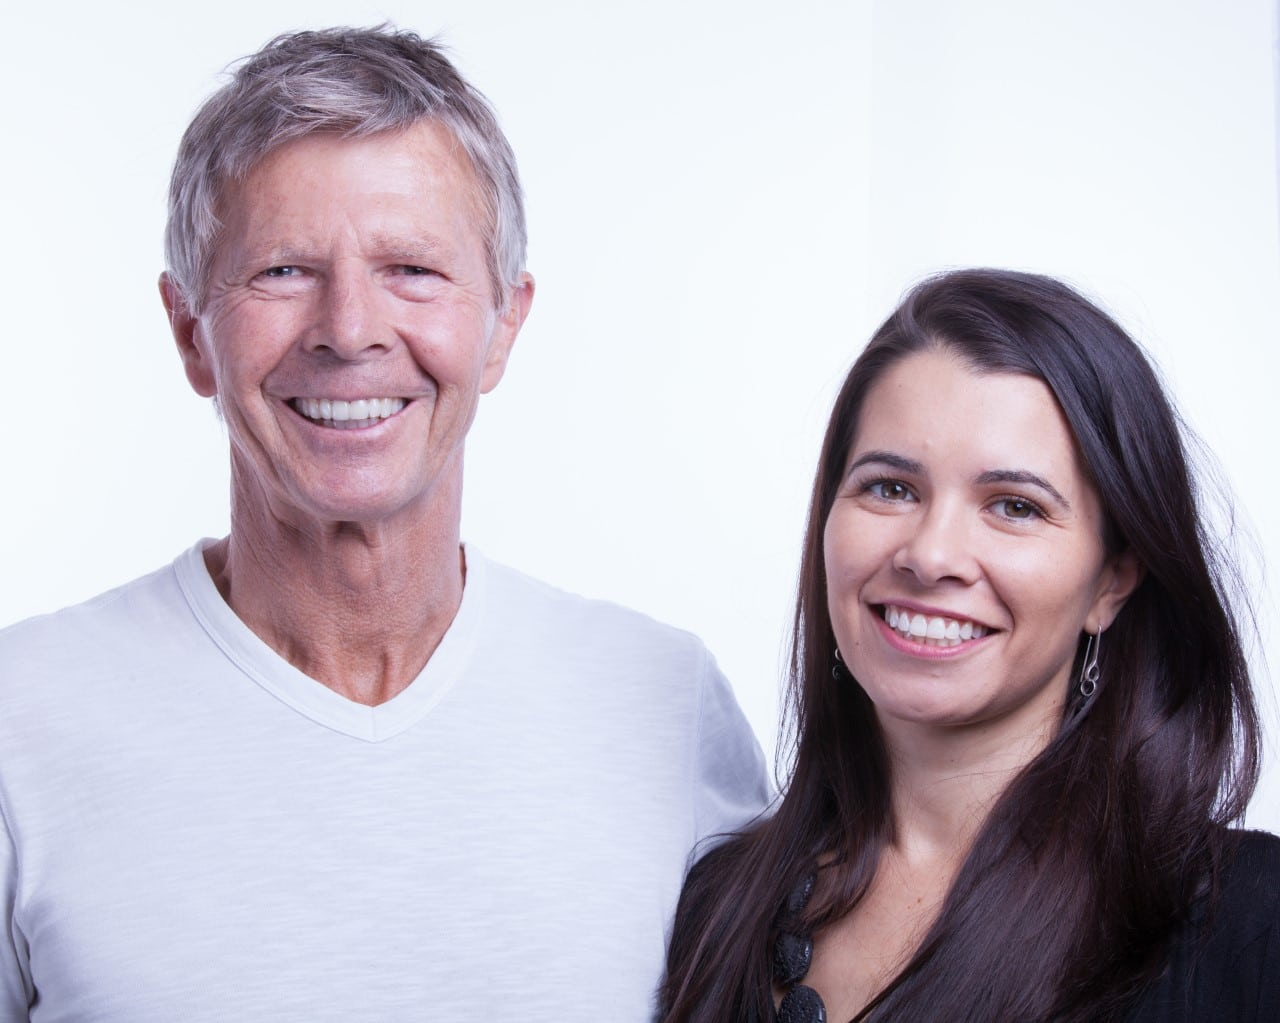 Founders: Trevor Bolland (CEO) and Monqiue Bolland (Brand Manager)